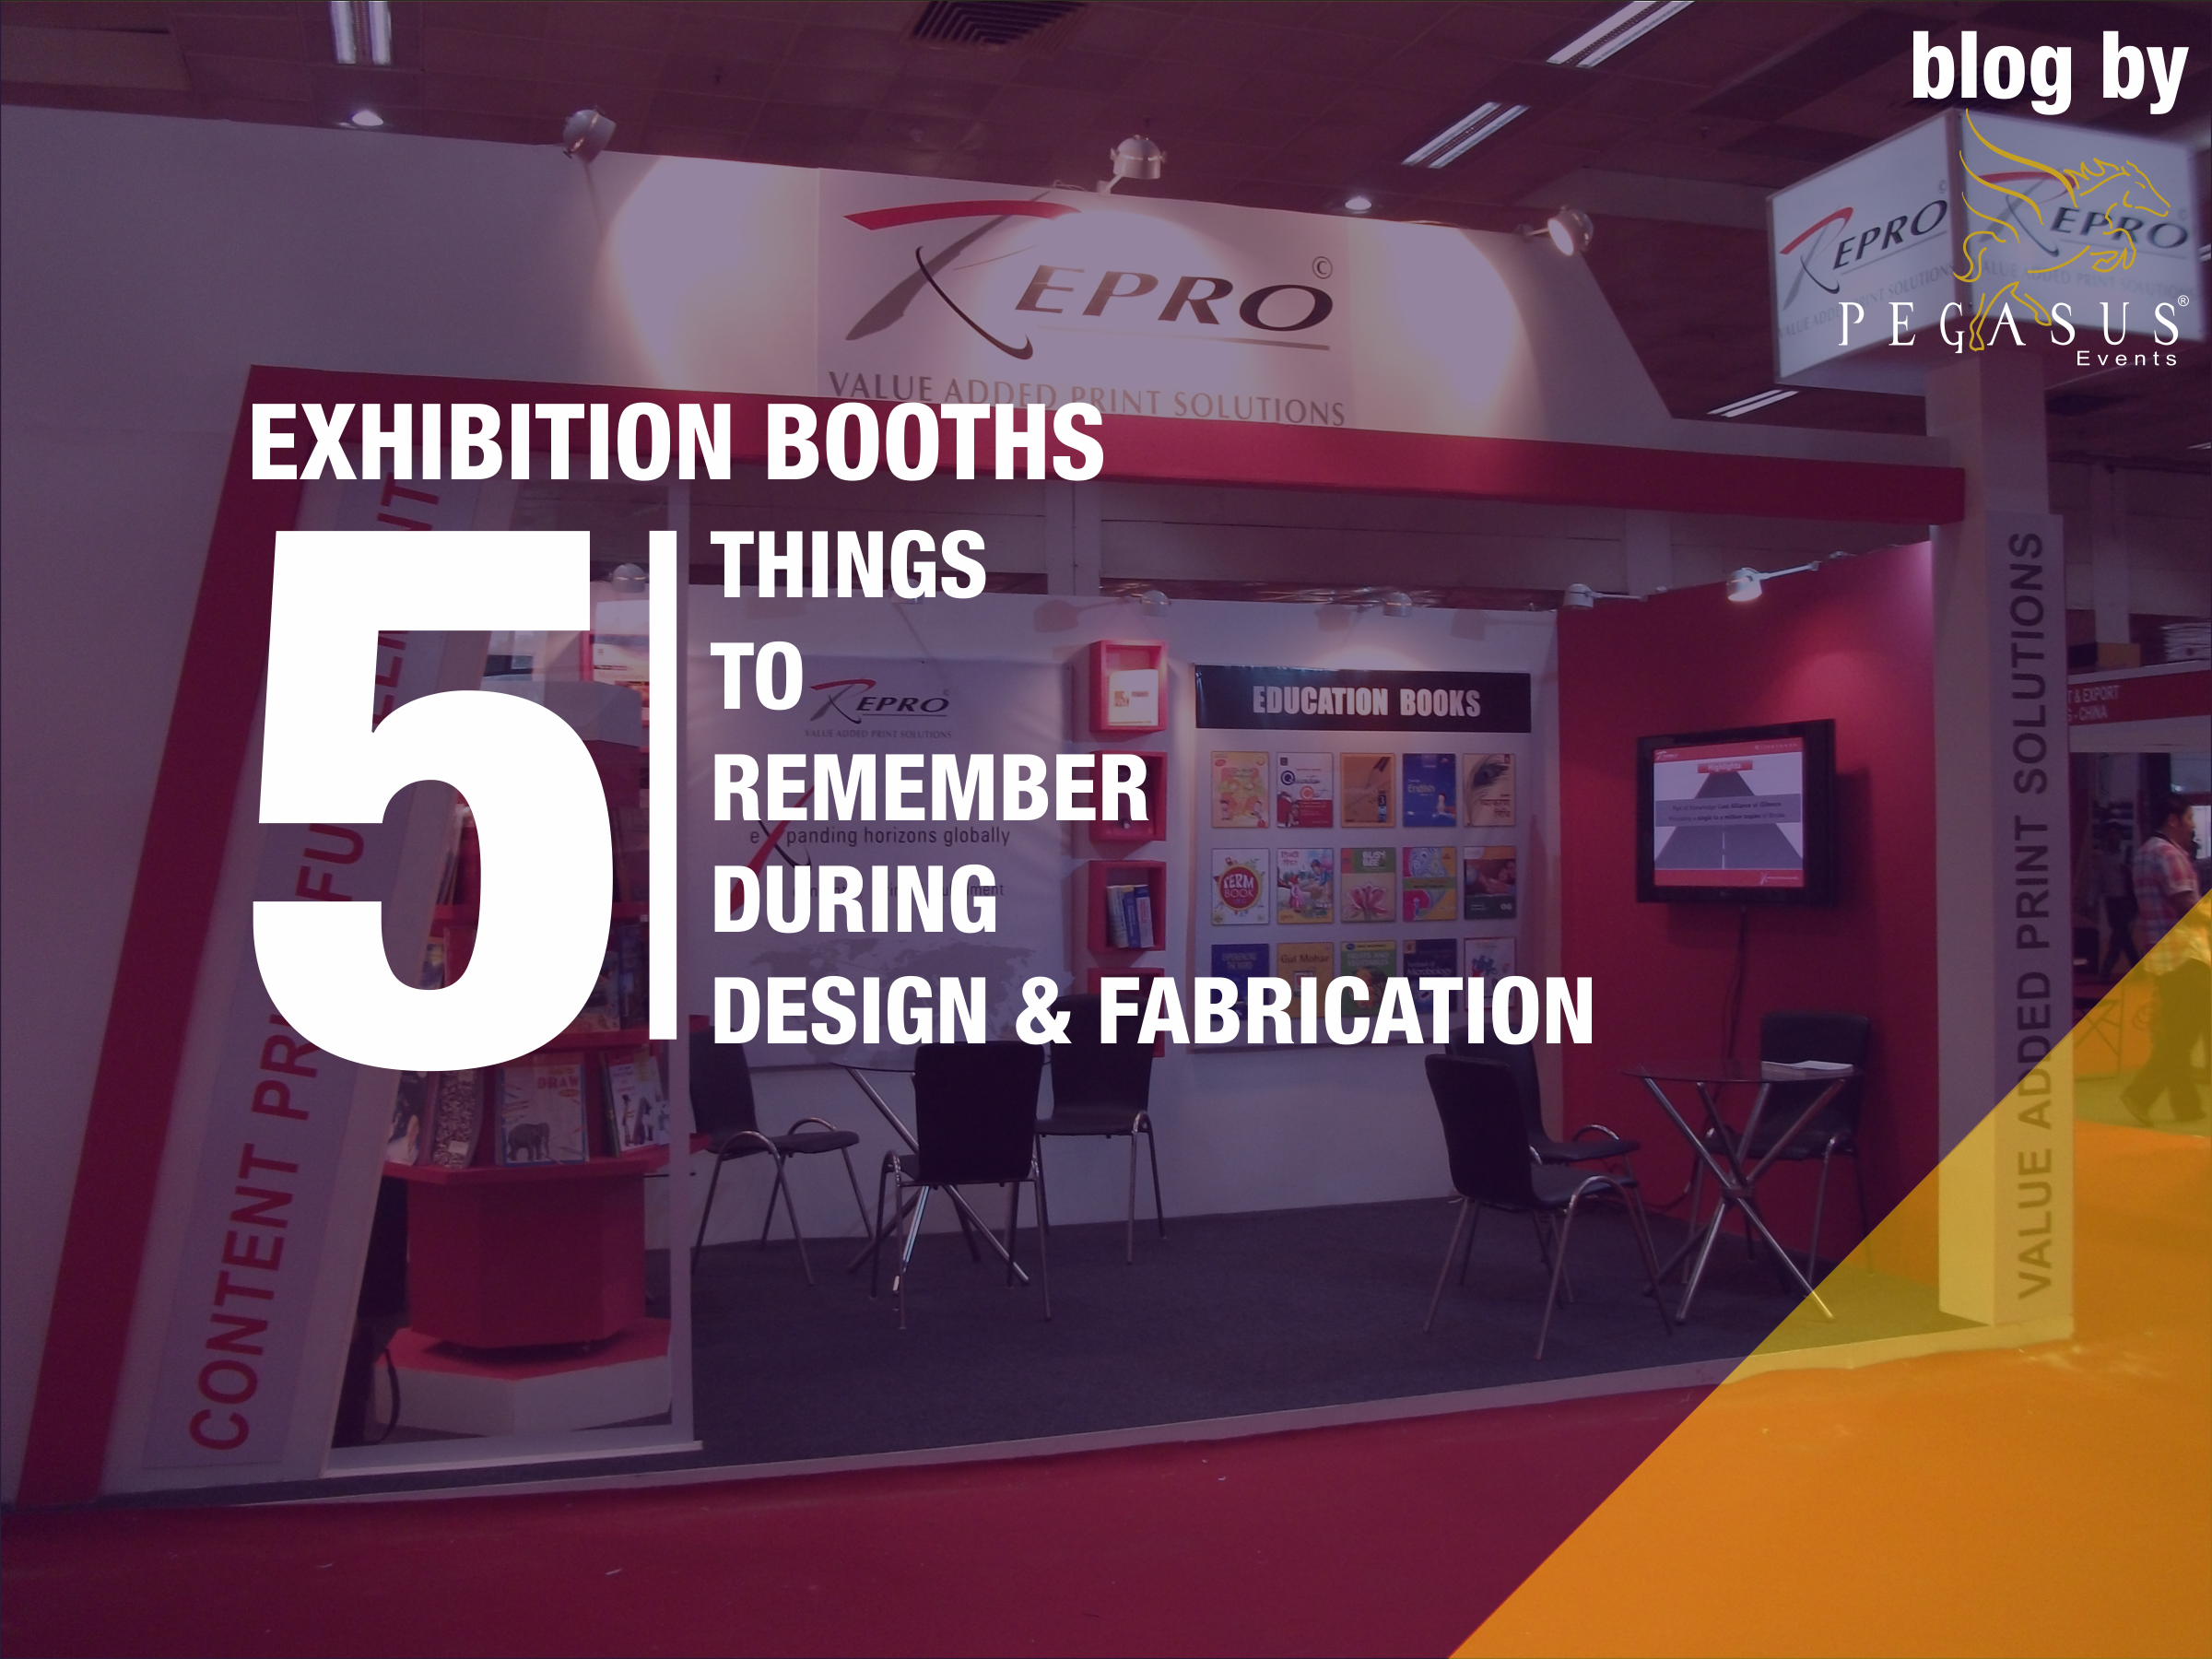 Exhibition Booth Fabrication : Exhibition booth design & fabrication 5 things to remember